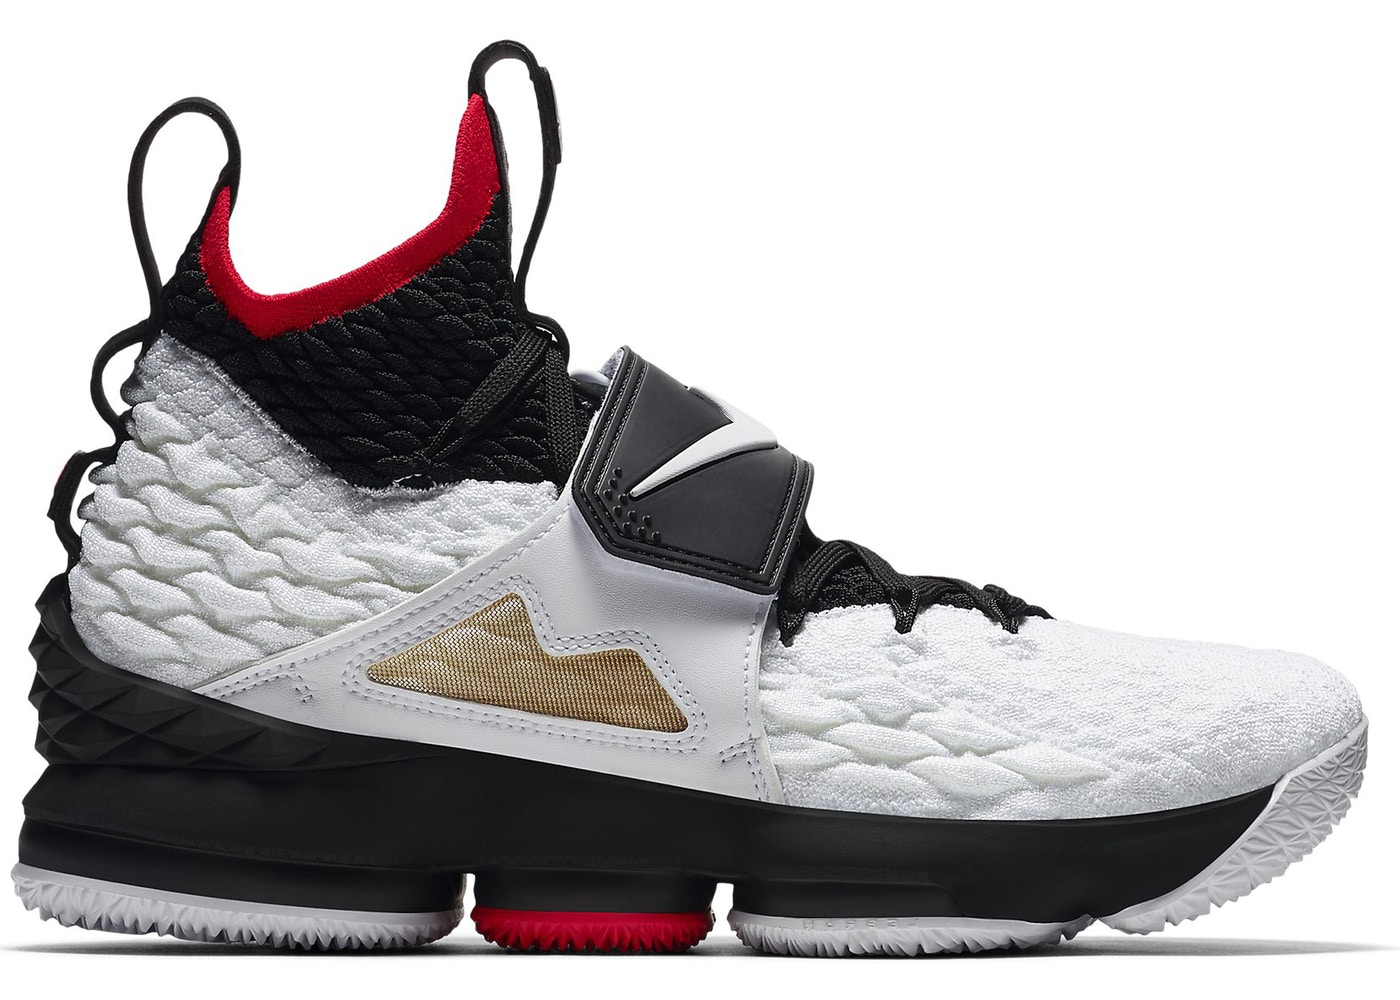 cheap for discount 19d94 58b9c LeBron 15 Diamond Turf (House of Hoops Special Box and Accessories)